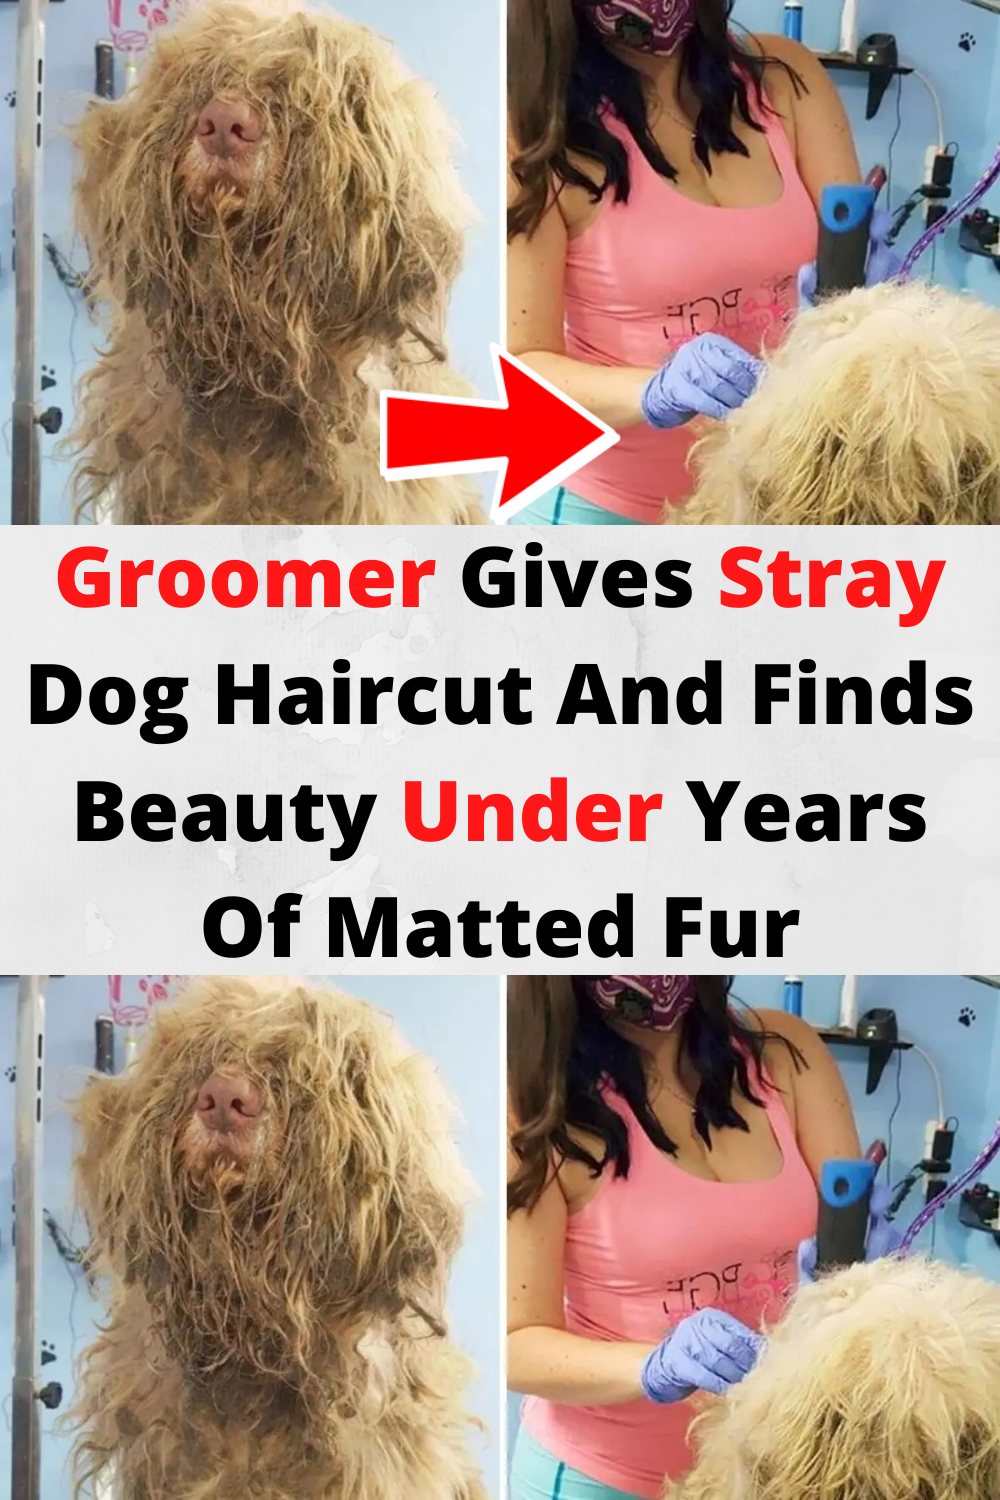 Woman Grooms Animal In Middle Of Night To Find Beautiful Dog Under Matted Fur In 2020 Crazy Funny Memes Funny Prank Videos Dog Haircuts